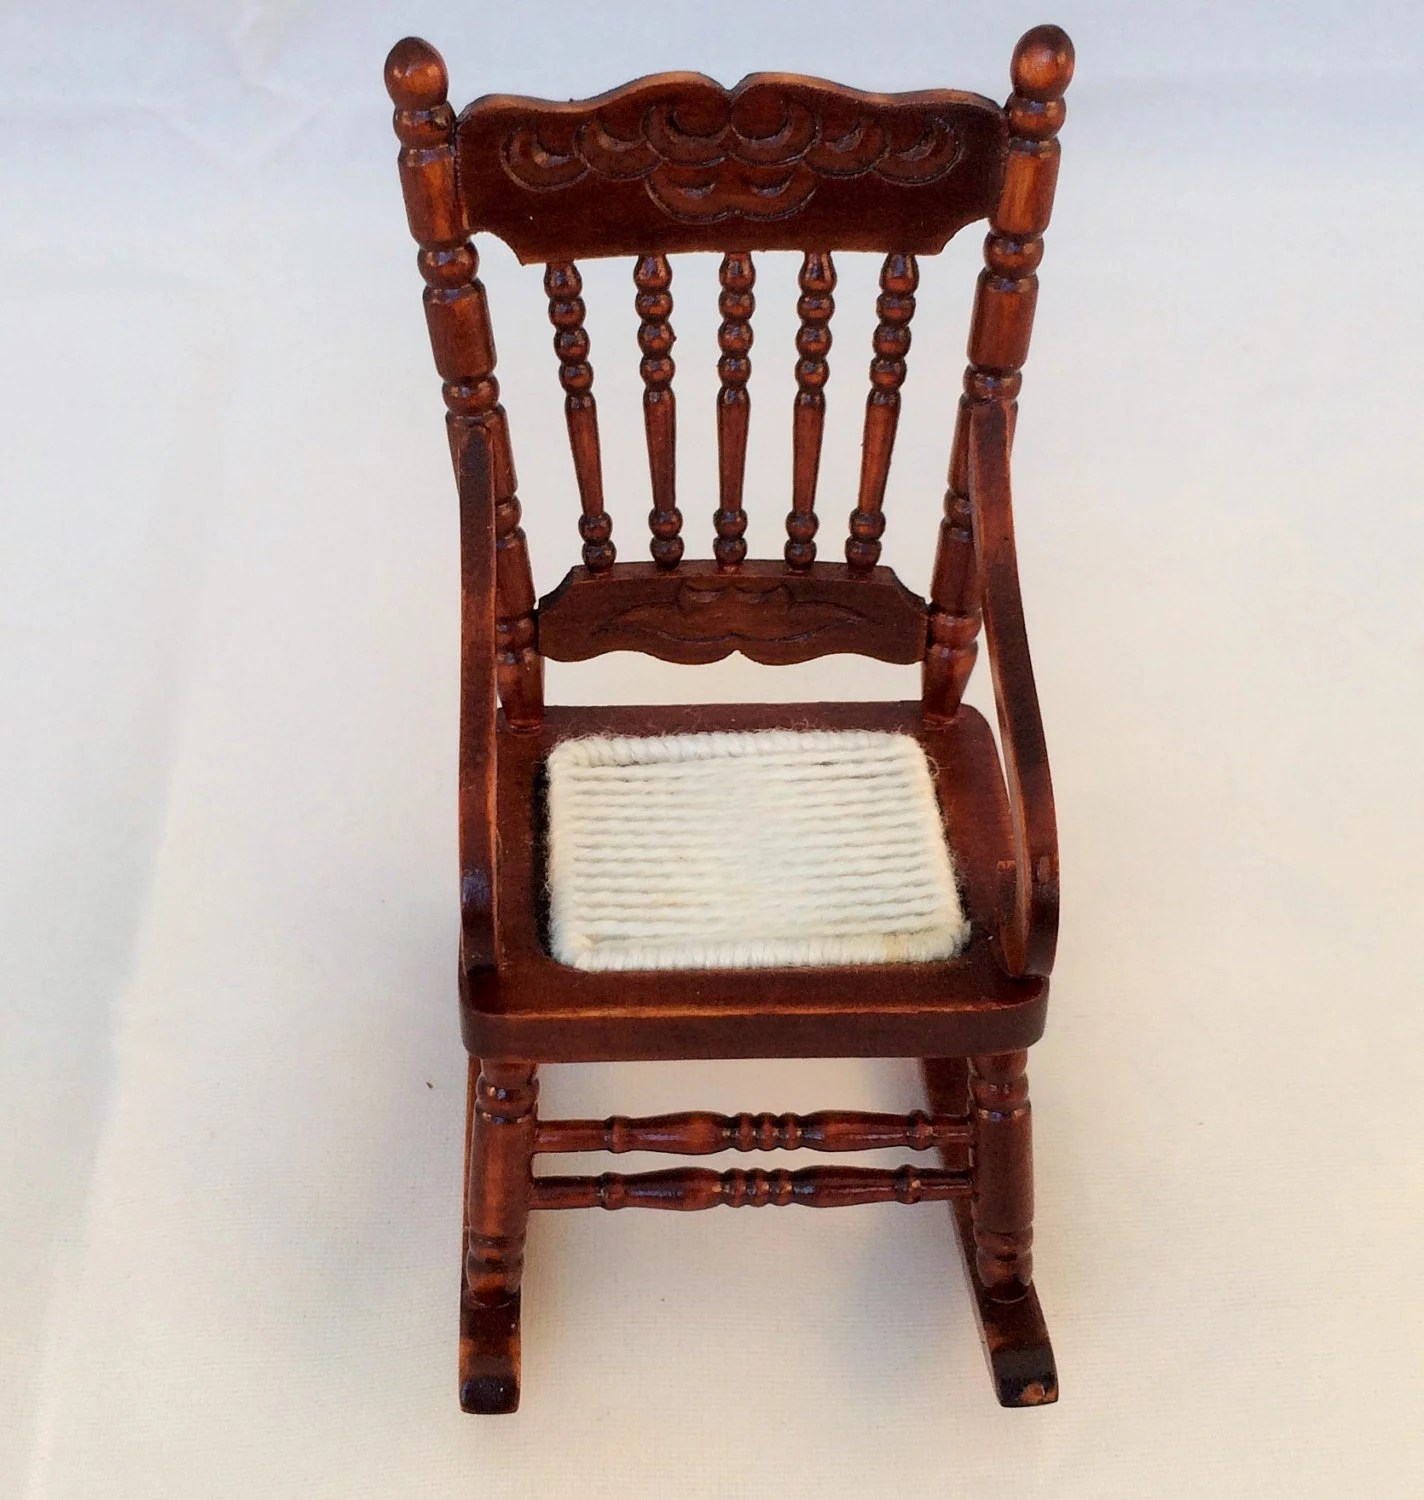 Miniature Chairs Vintage Miniature Wooden Rocking Chair 1 12 Scale Hand